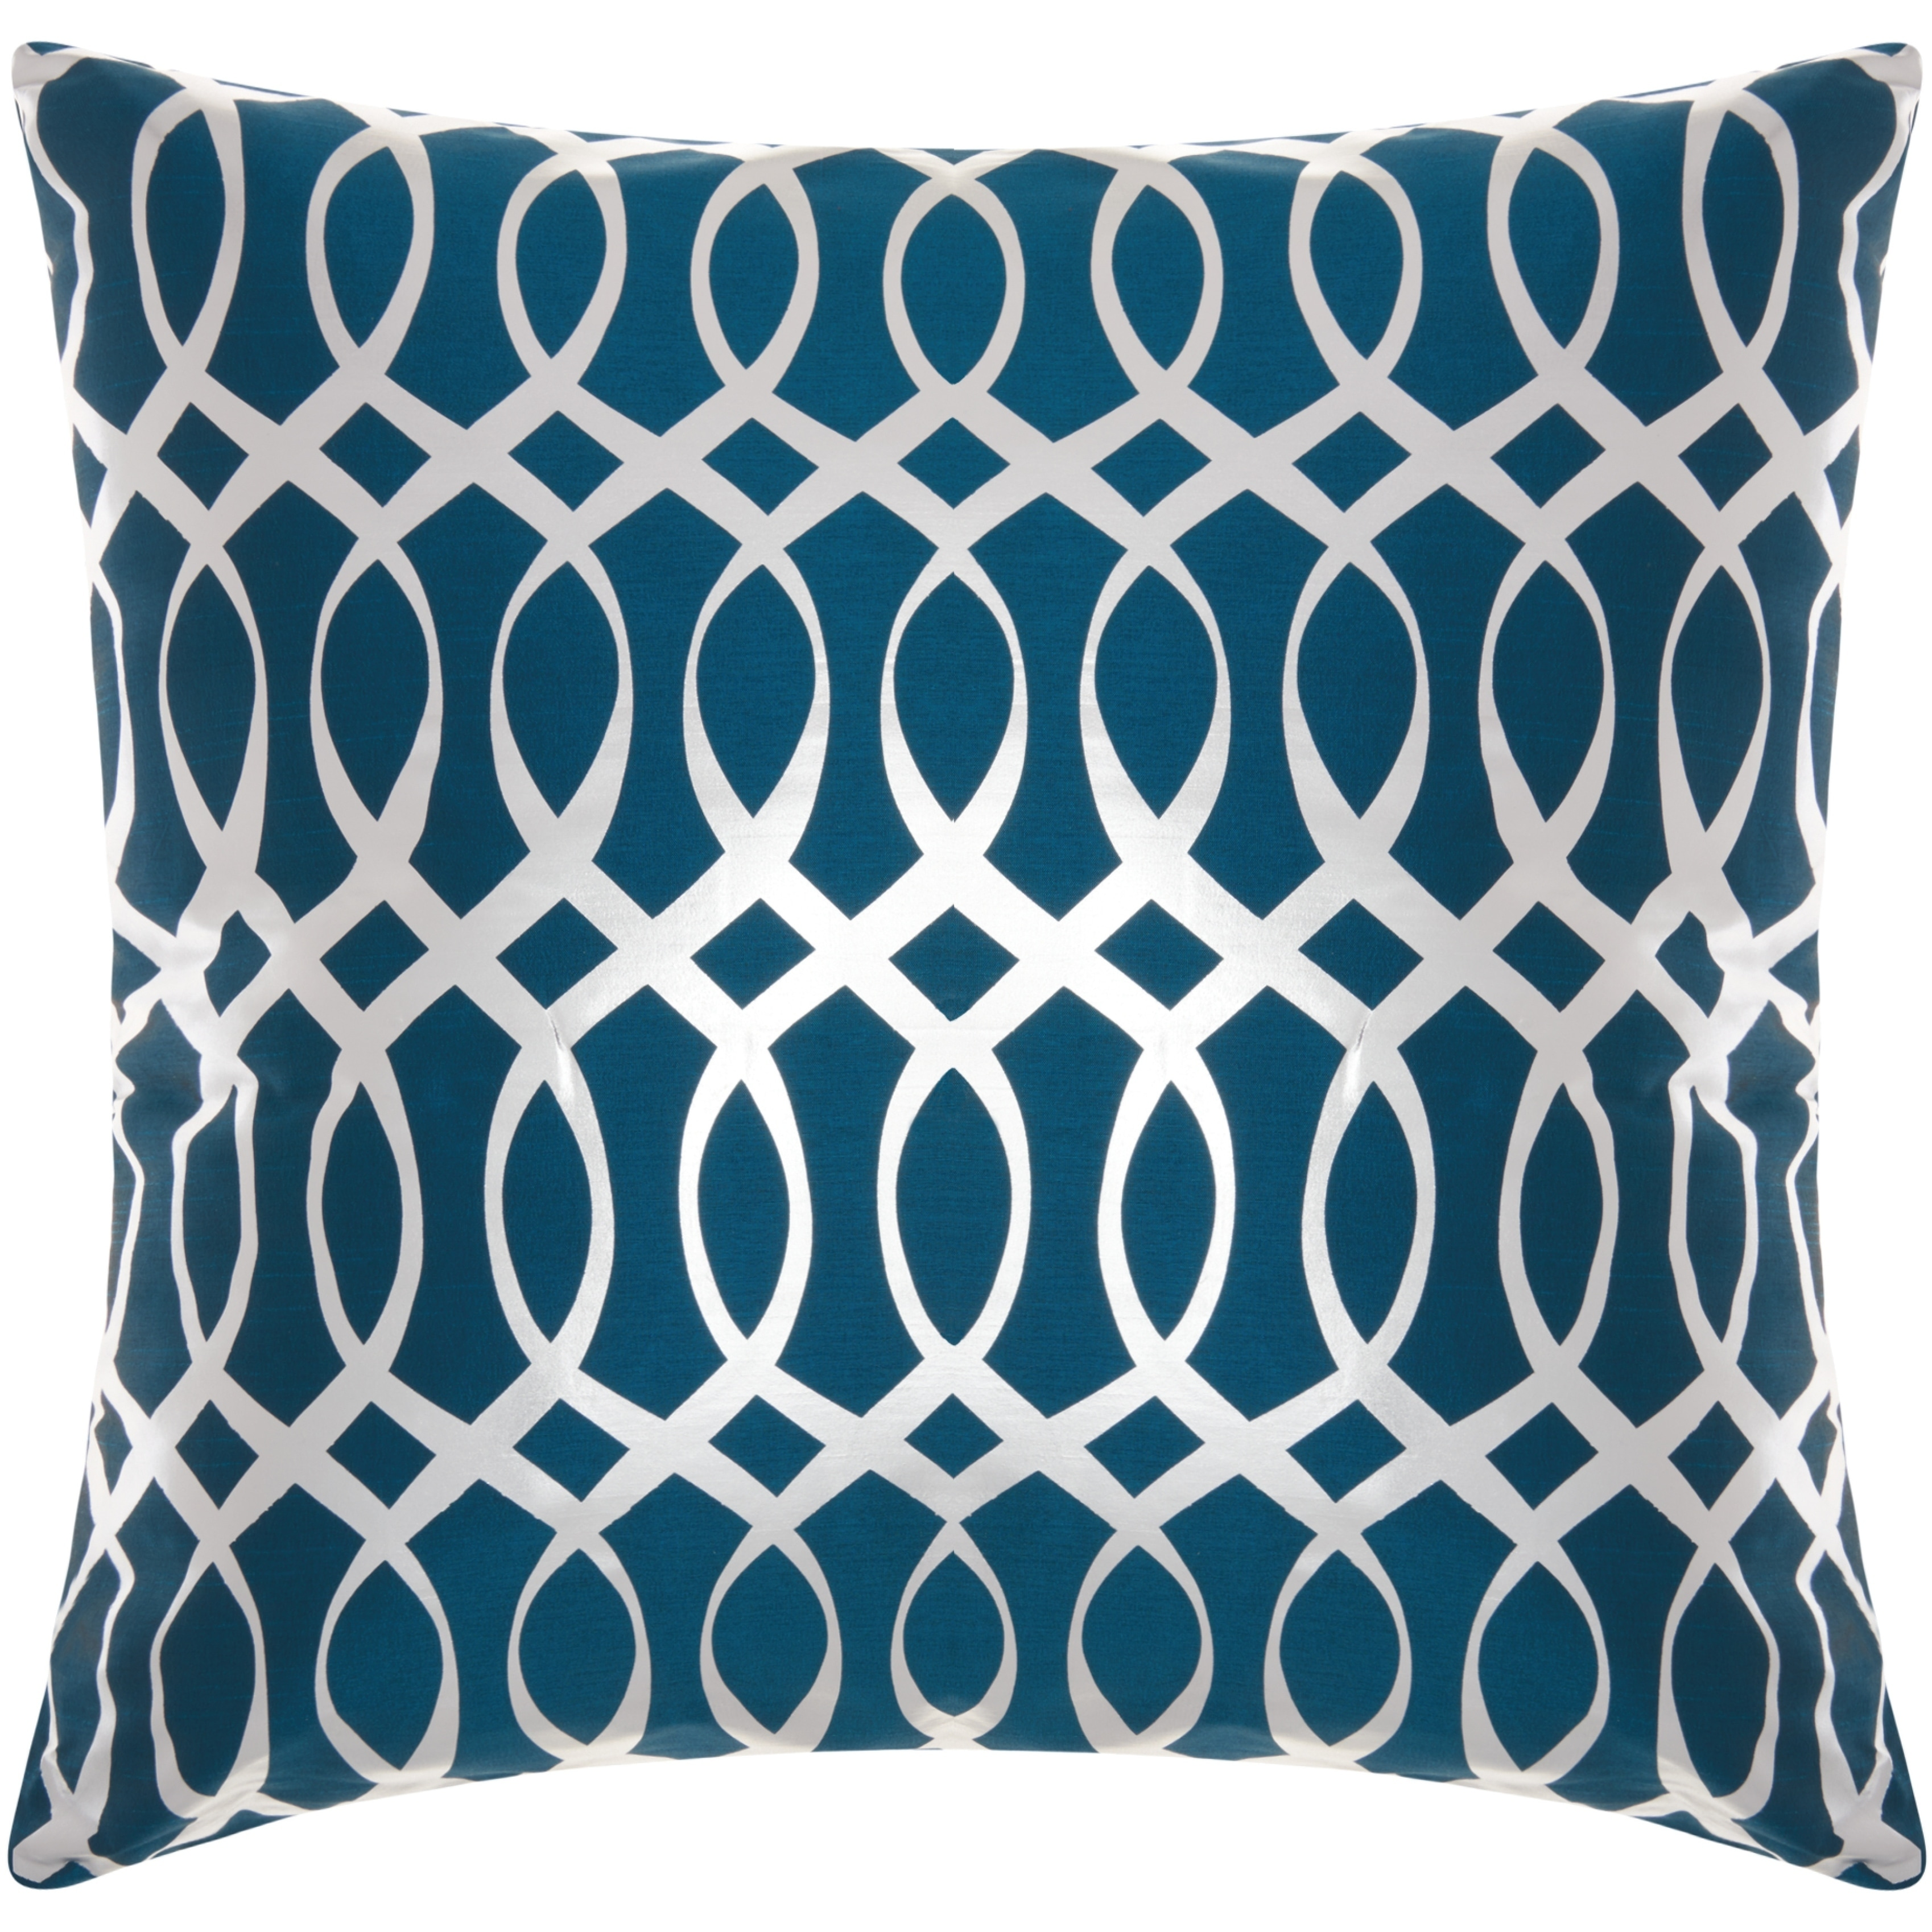 Mina Victory Metallic Infinity Teal Silver 2 Pack Throw Pillow 20 Inch X 20 Inch Overstock 21898969